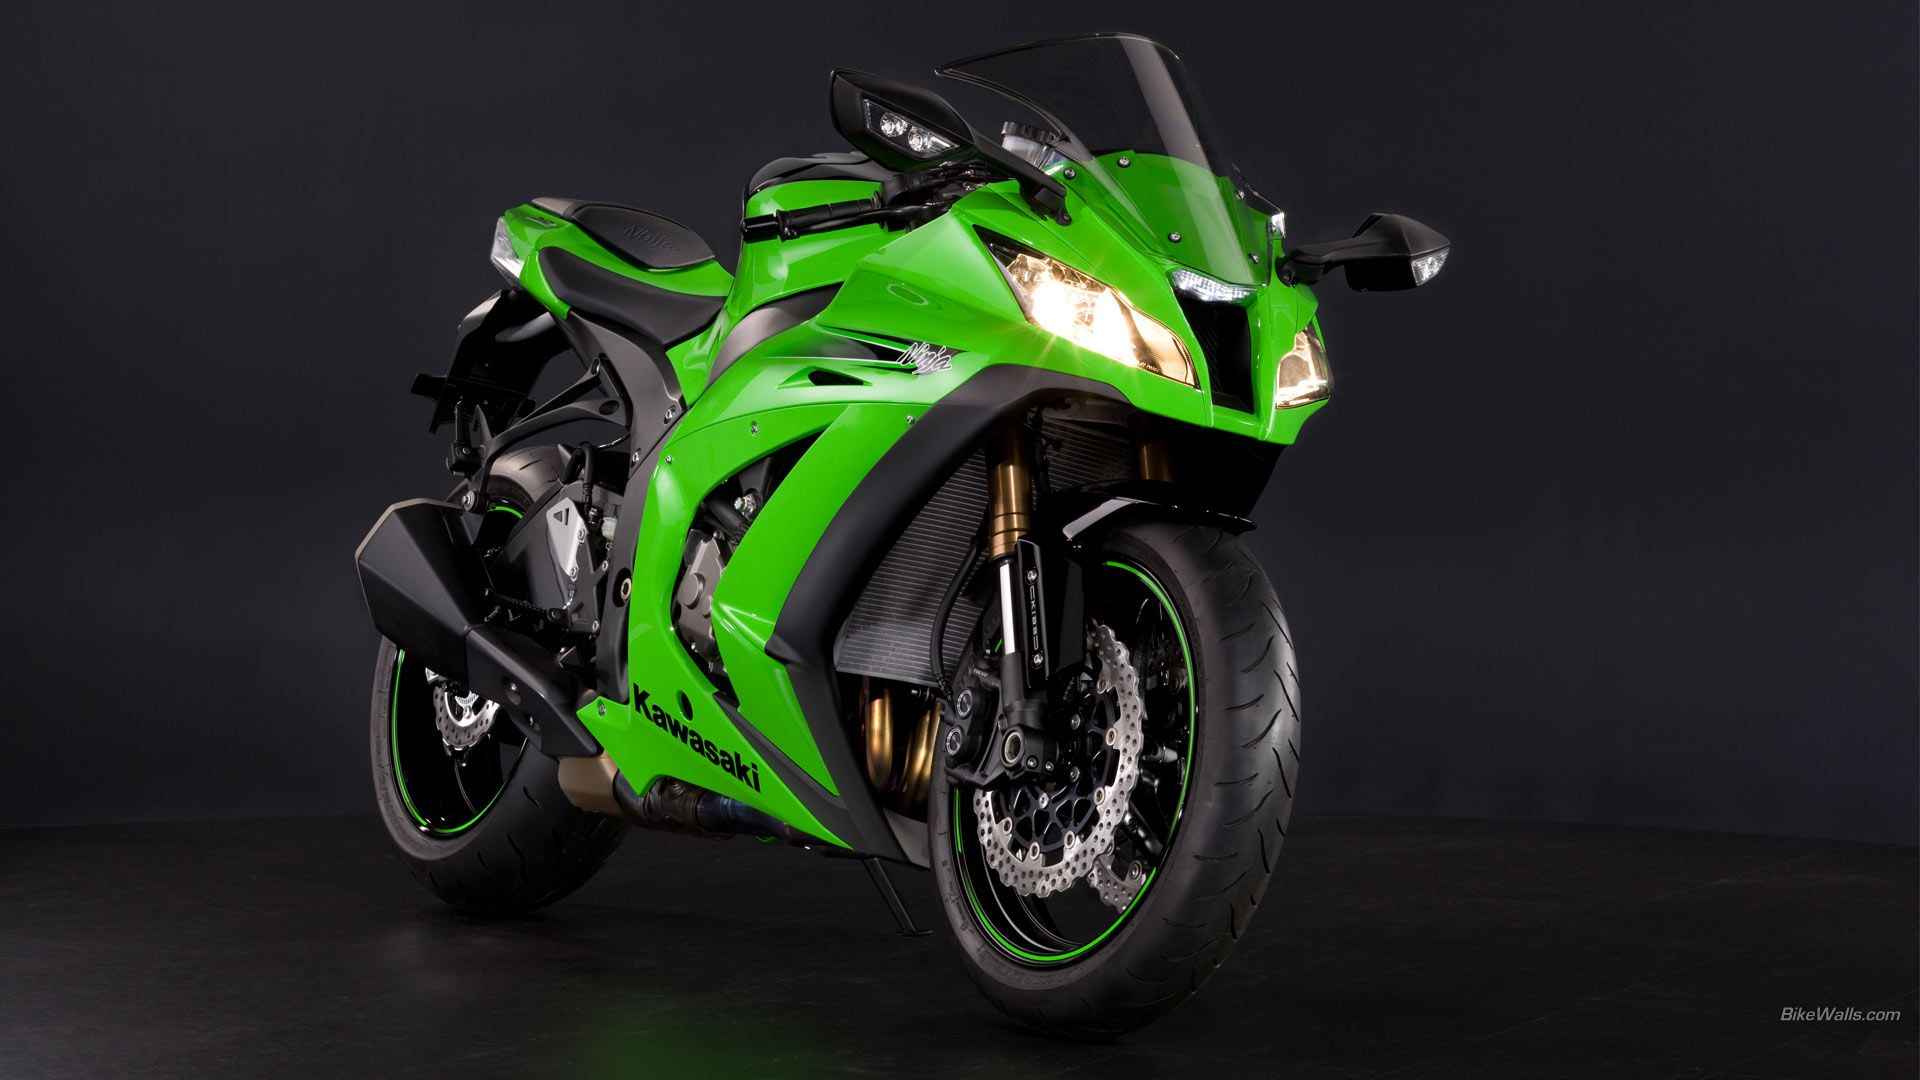 kawasaki-ninja-wallpapers | kawasaki ninja zx10r wallpaper